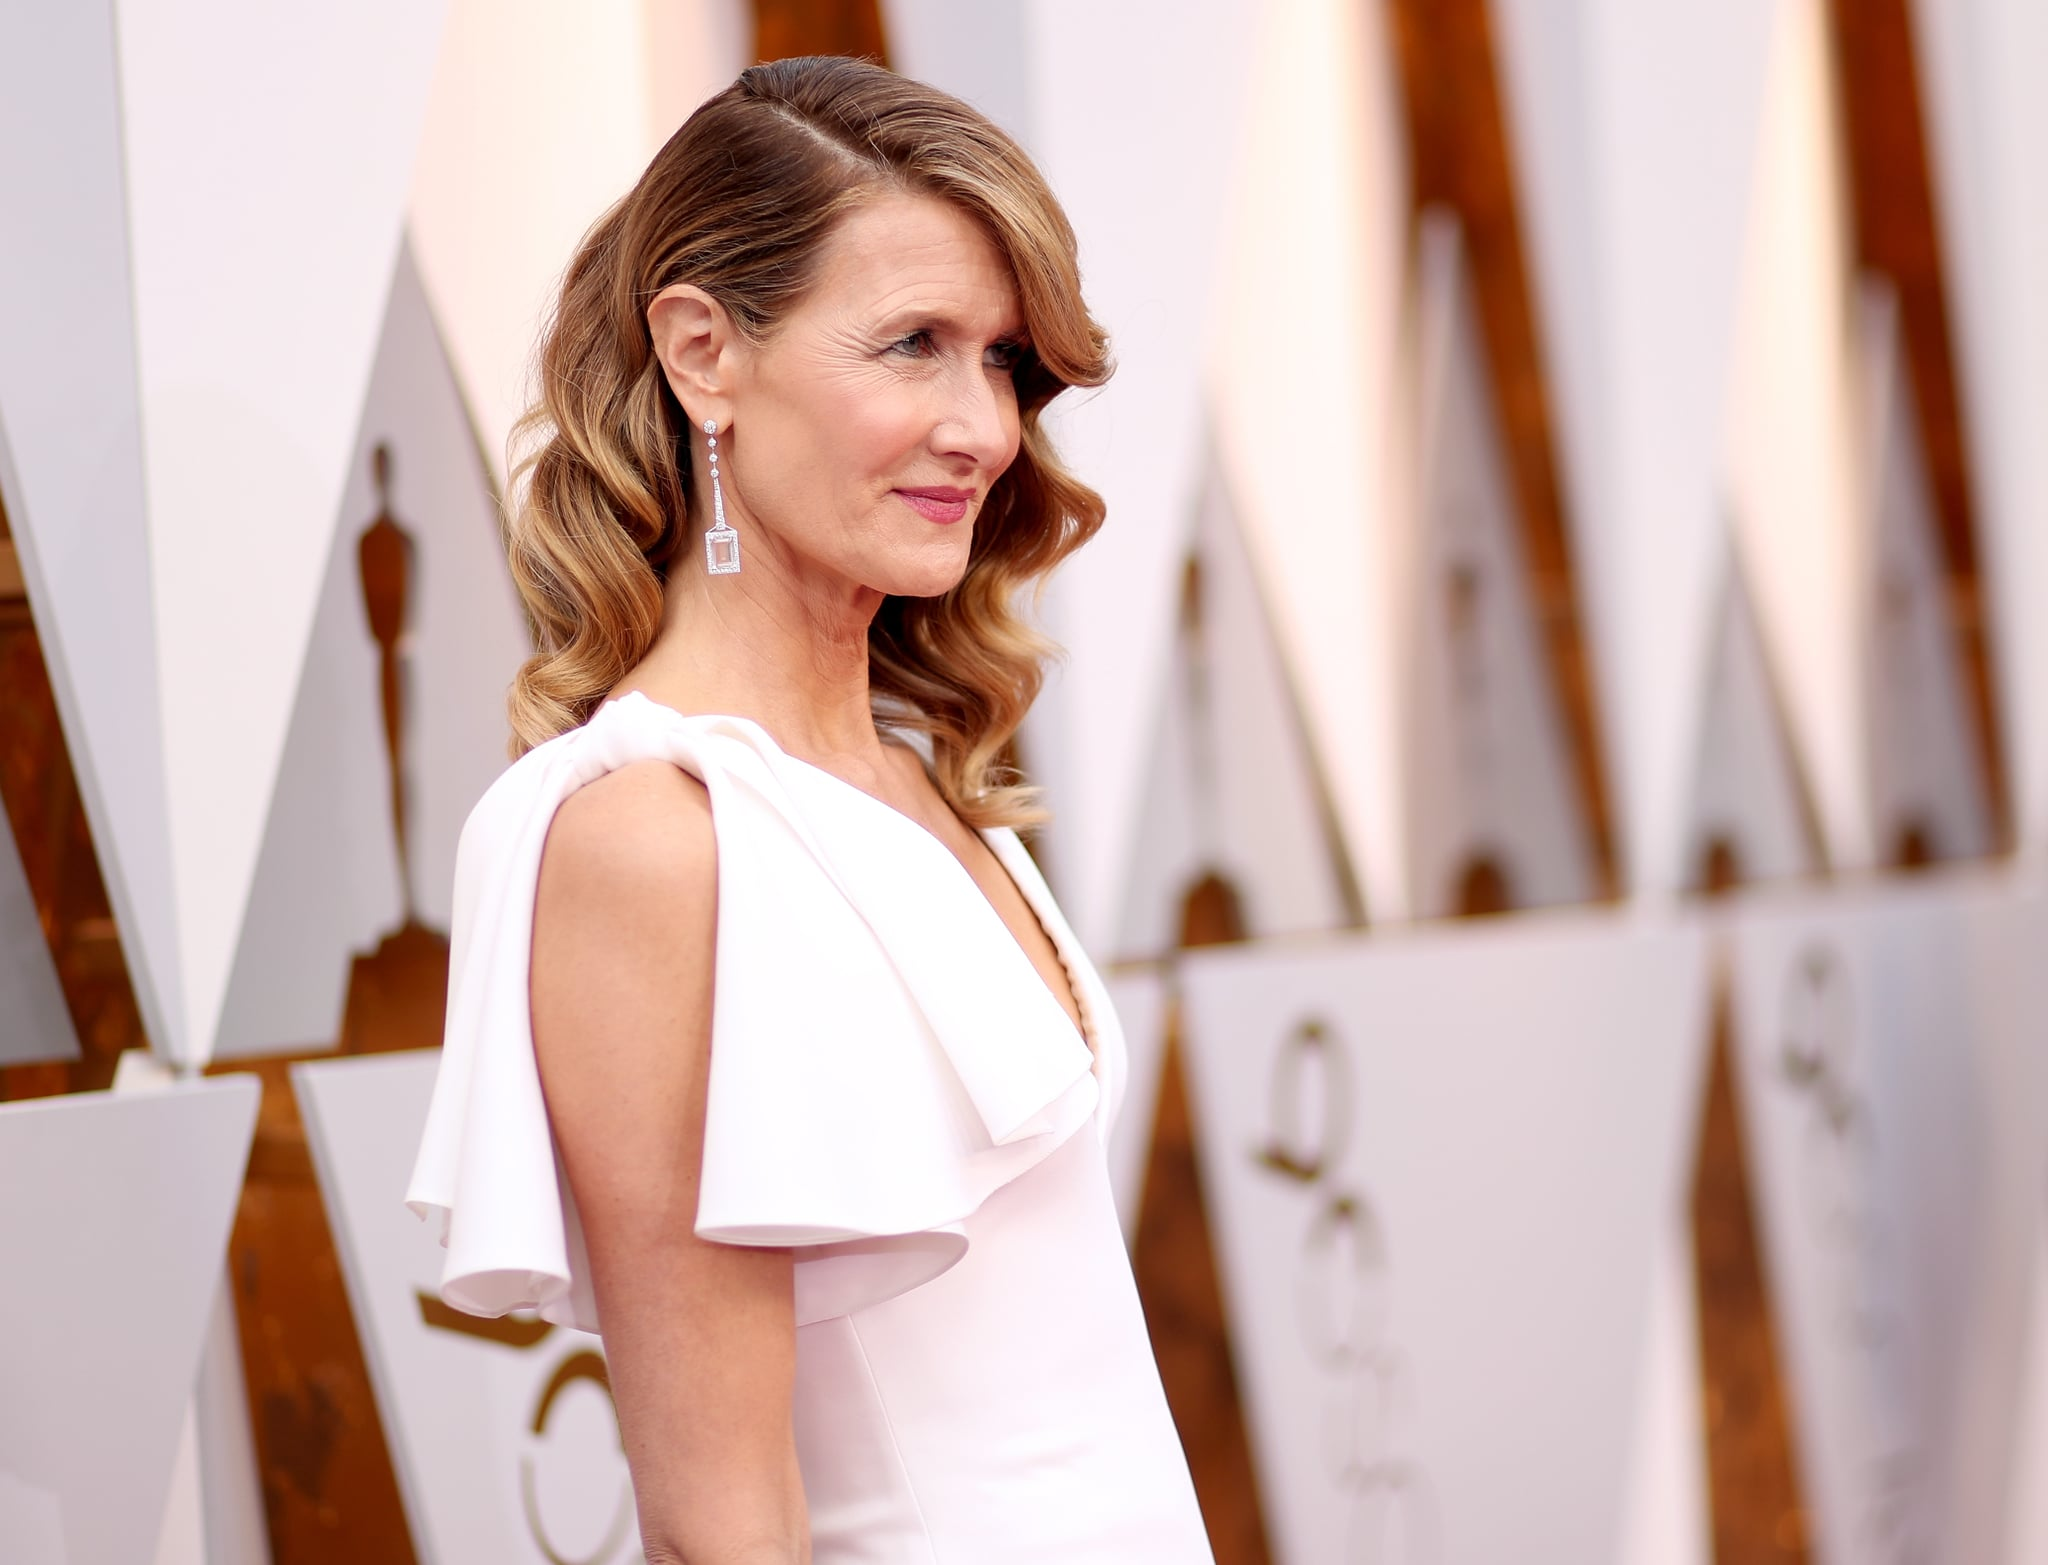 HOLLYWOOD, CA - MARCH 04:  Laura Dern attends the 90th Annual Academy Awards at Hollywood & Highland Center on March 4, 2018 in Hollywood, California.  (Photo by Christopher Polk/Getty Images)